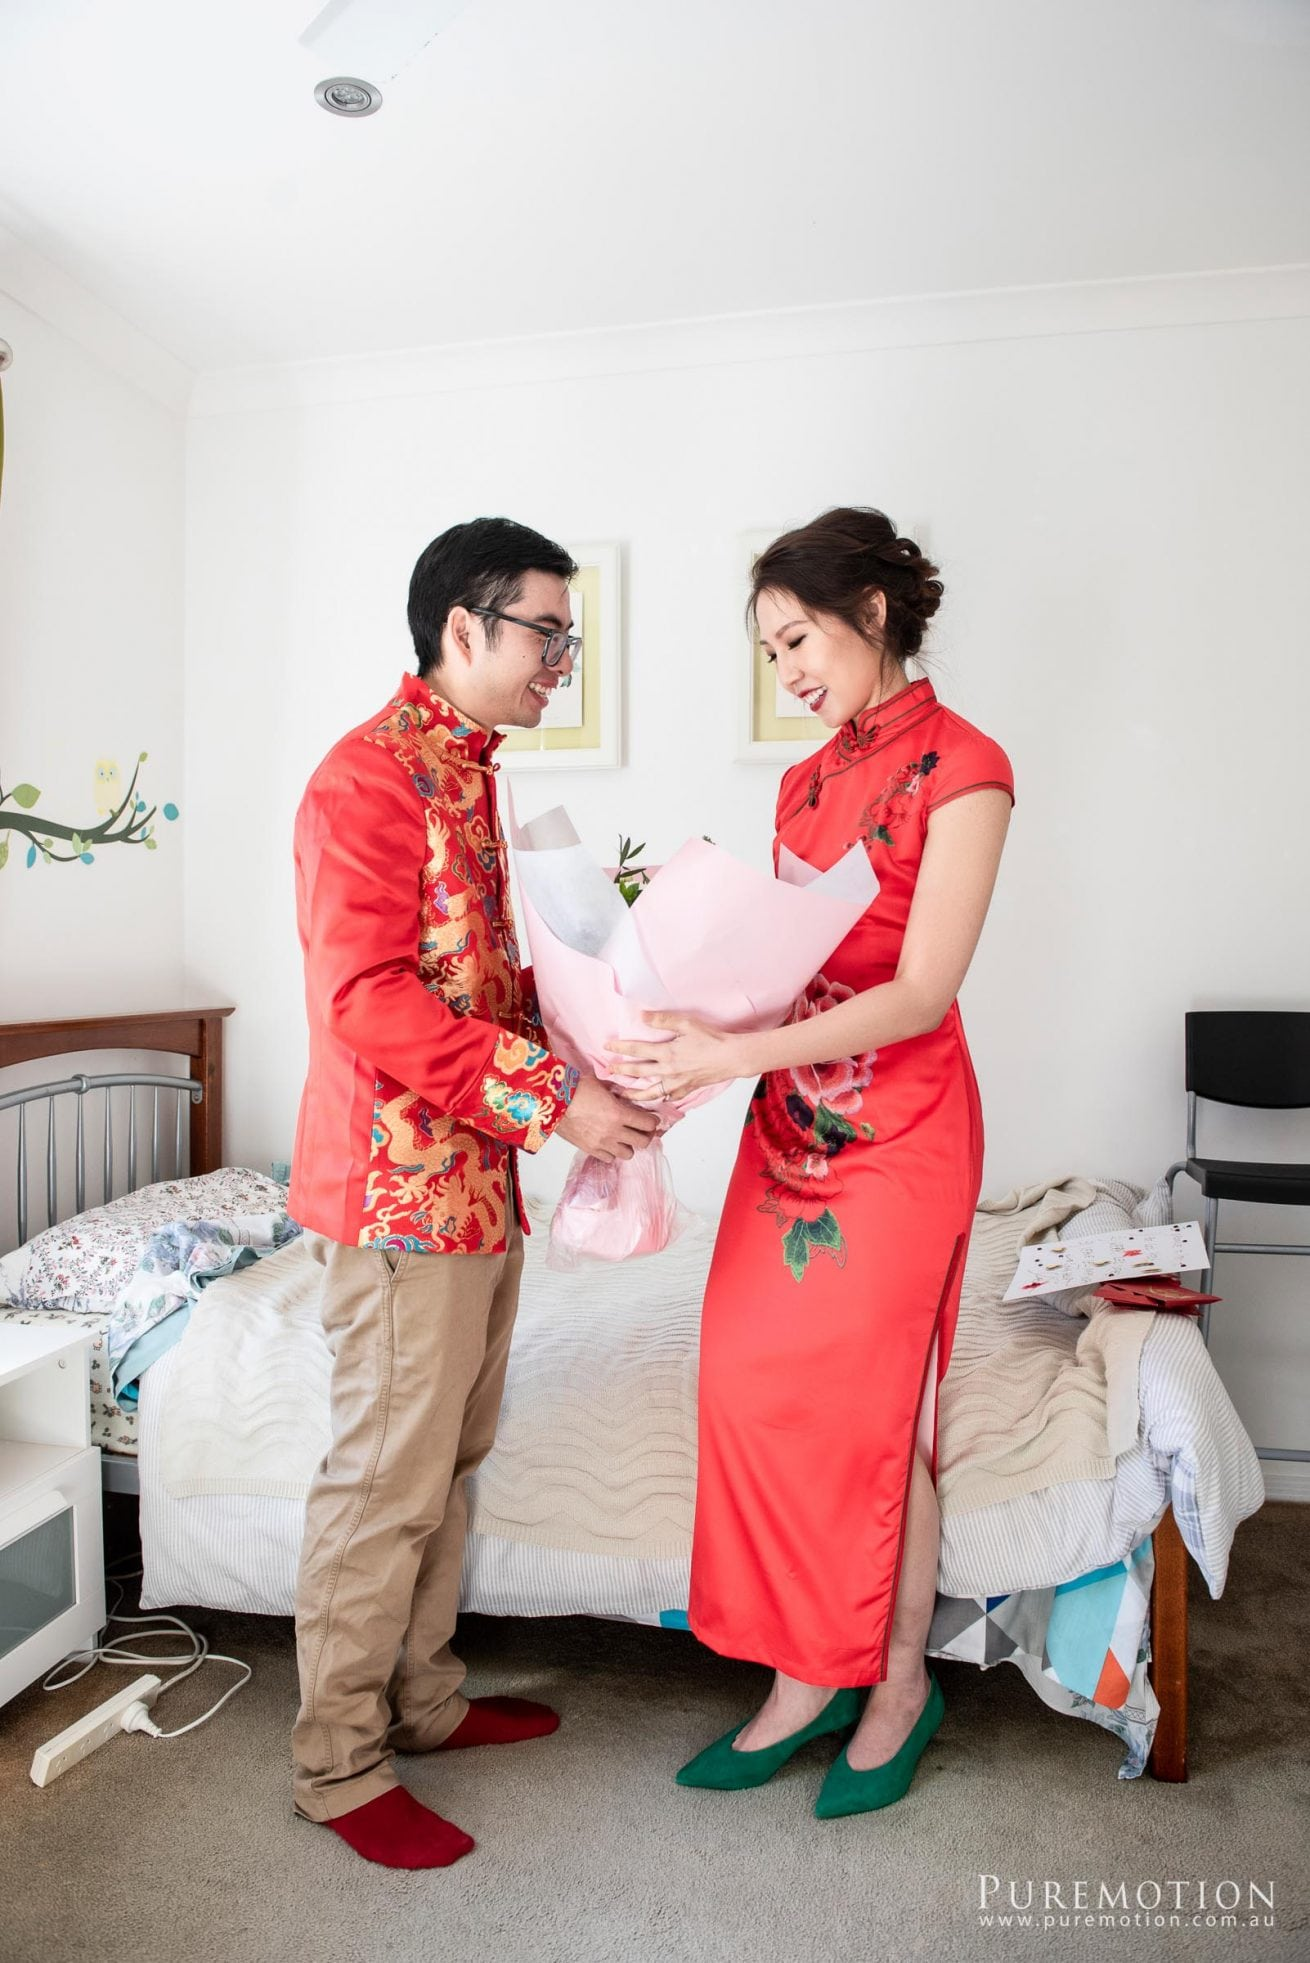 180818 Puremotion Wedding Photography Brisbane Alex Huang MichelleConan Room 360_Site-0015